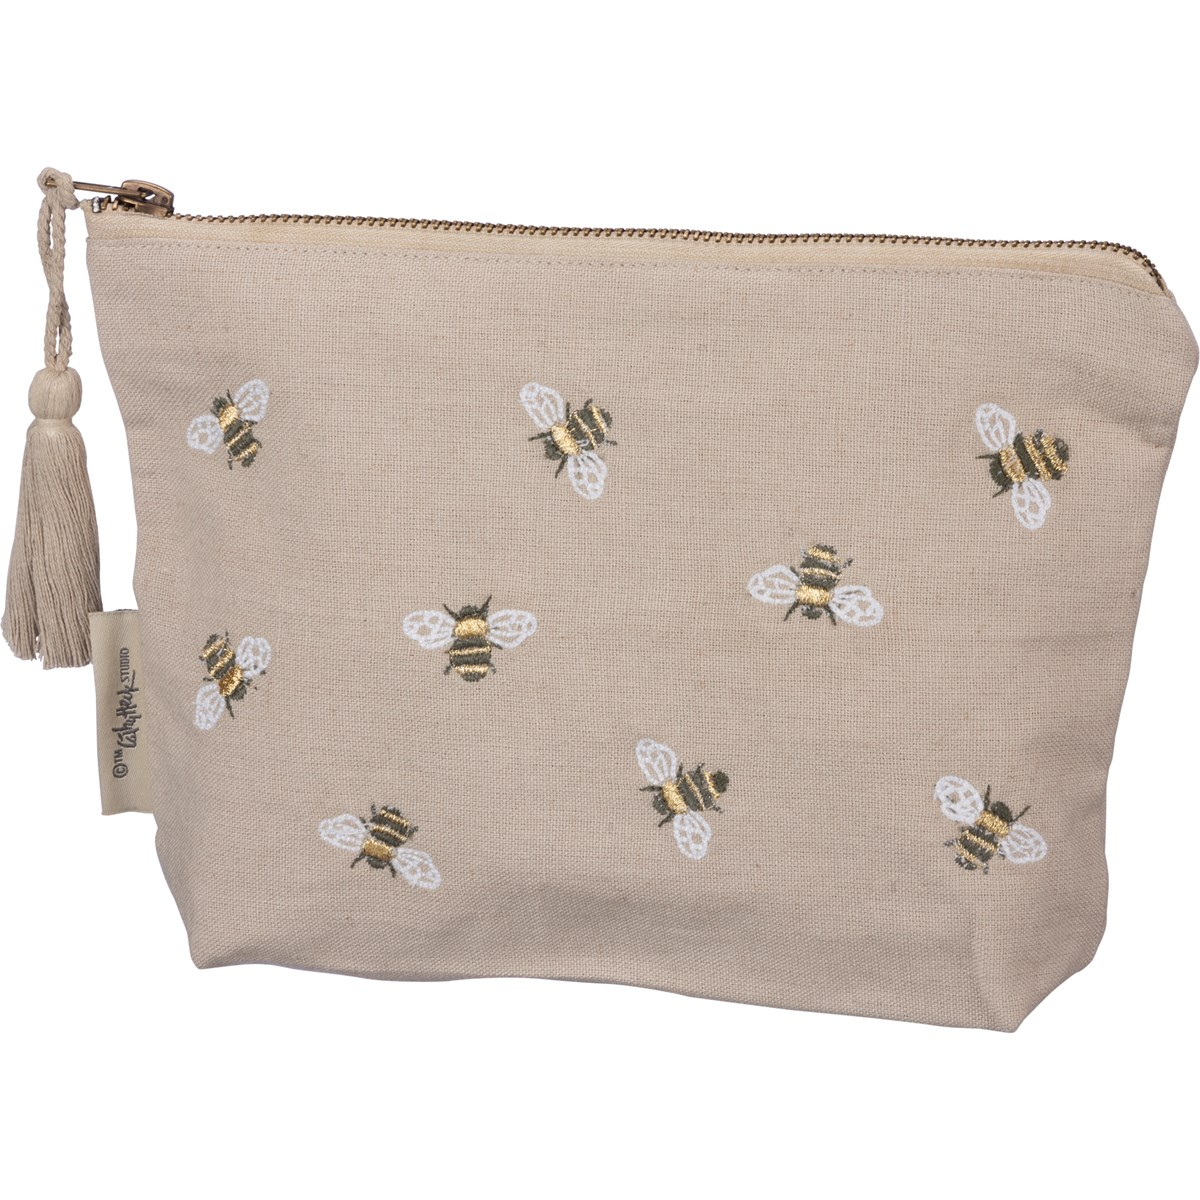 "Zipper Pouch - Bee You Tiful - 9.75"" x 6.50"" x 2"" - Cotton, Linen, Metal"